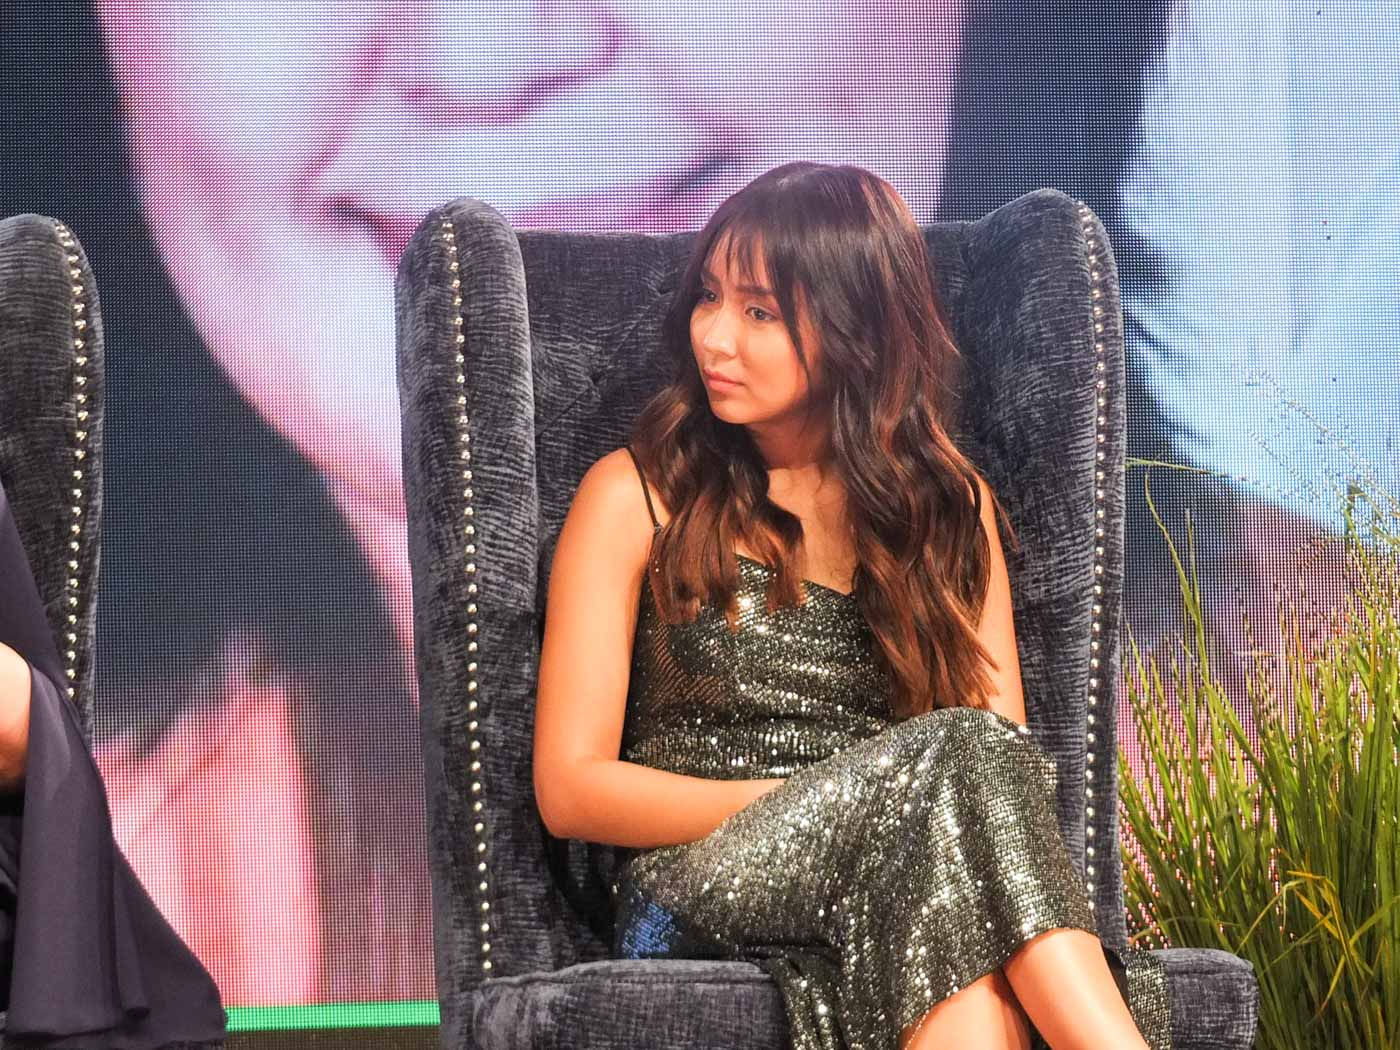 RESPECT. Kathryn Bernardo says that in settling down with a partner, one should also remember to respect one another.